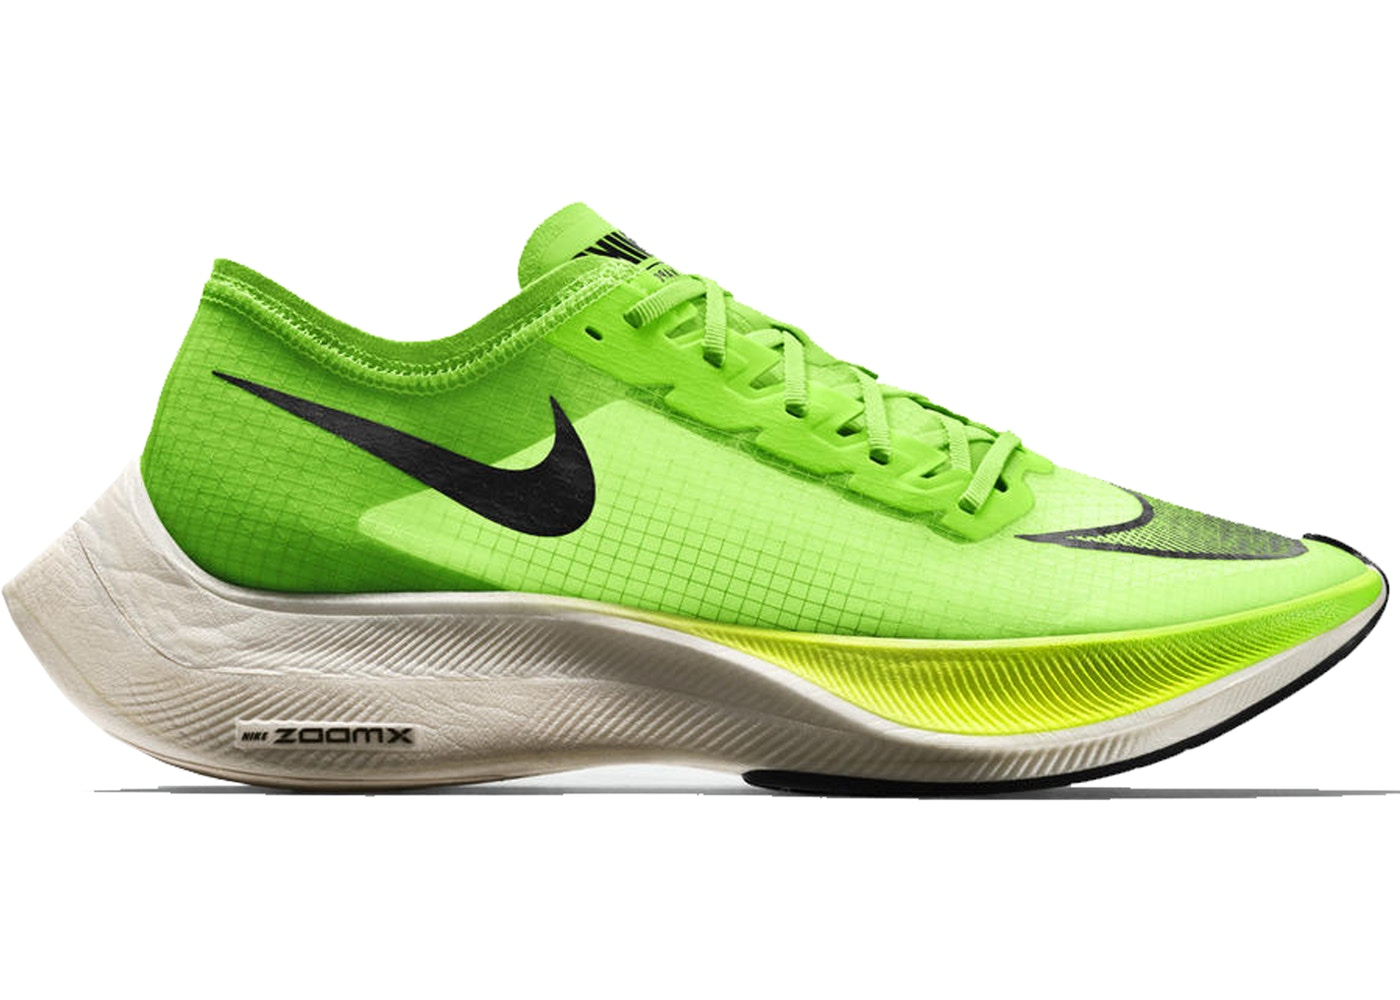 Enter into Shoekicker's Contest for a chance to win any pair of running shoes of your choosing! Giveaway Image